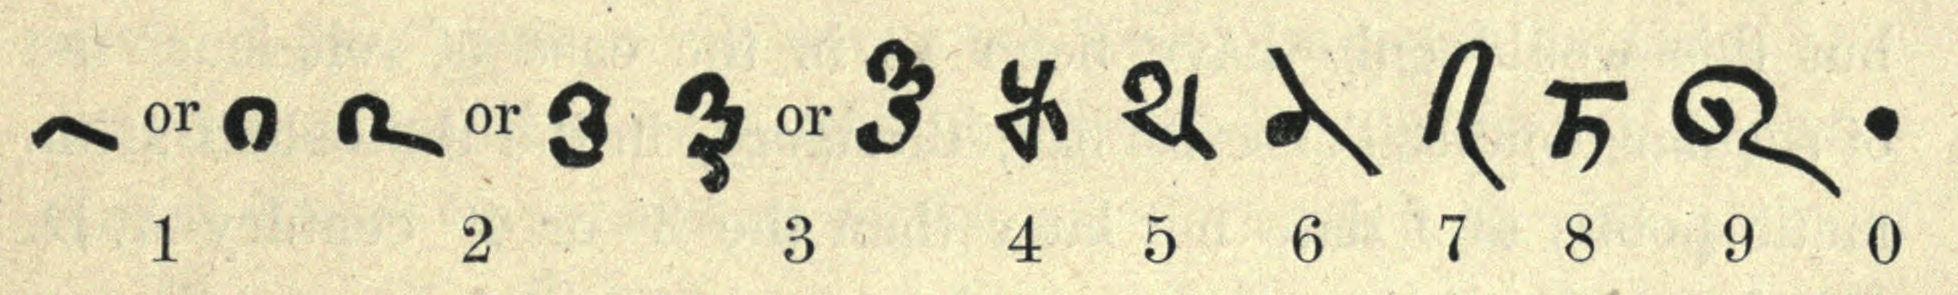 Bakhshali numerals, from an 1887 work by Hoernlé.